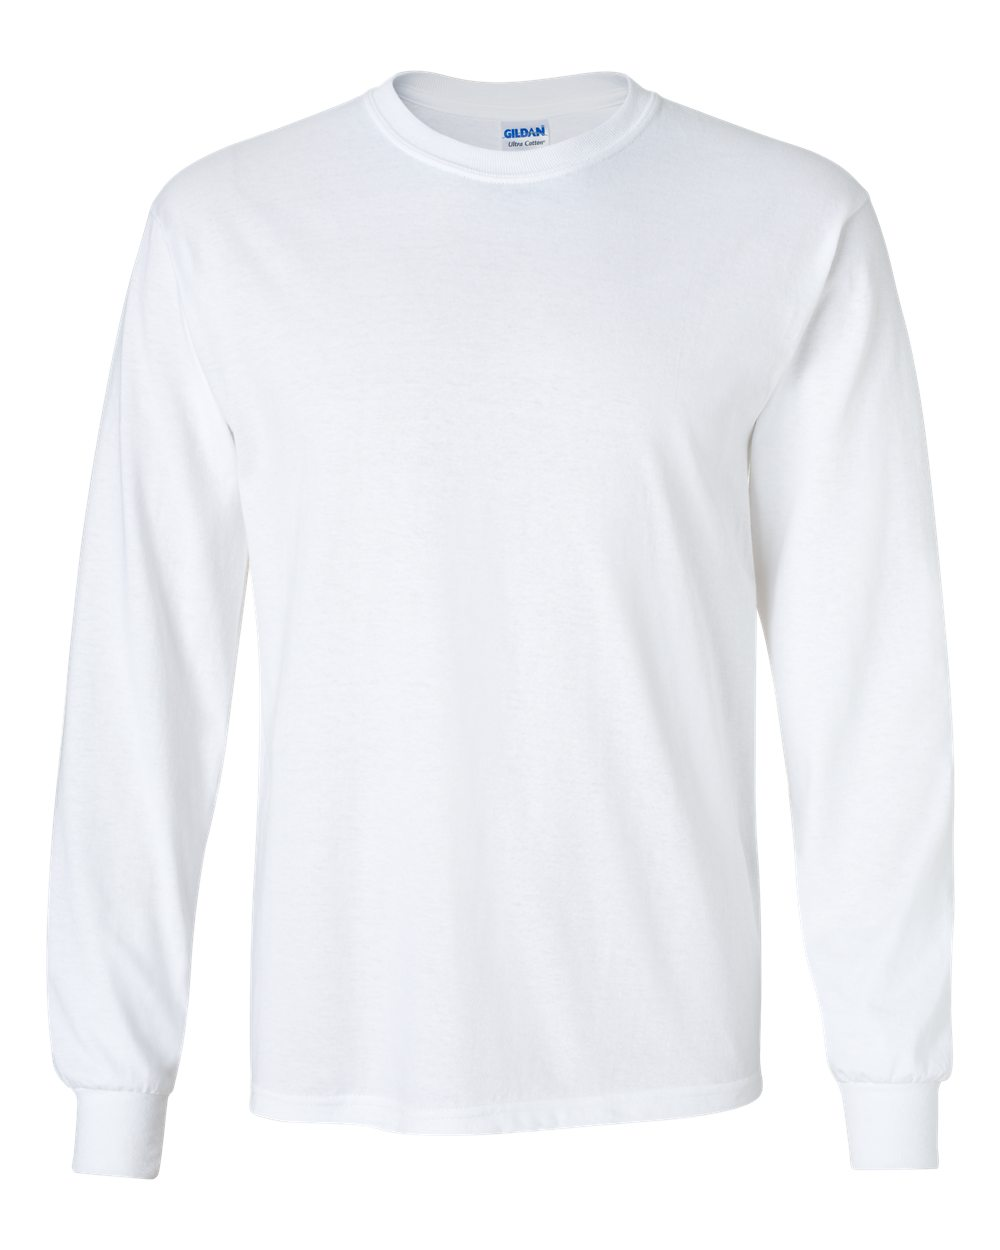 UltraPress | Custom Gildan Ultra Cotton Long Sleeve T-Shirt ...